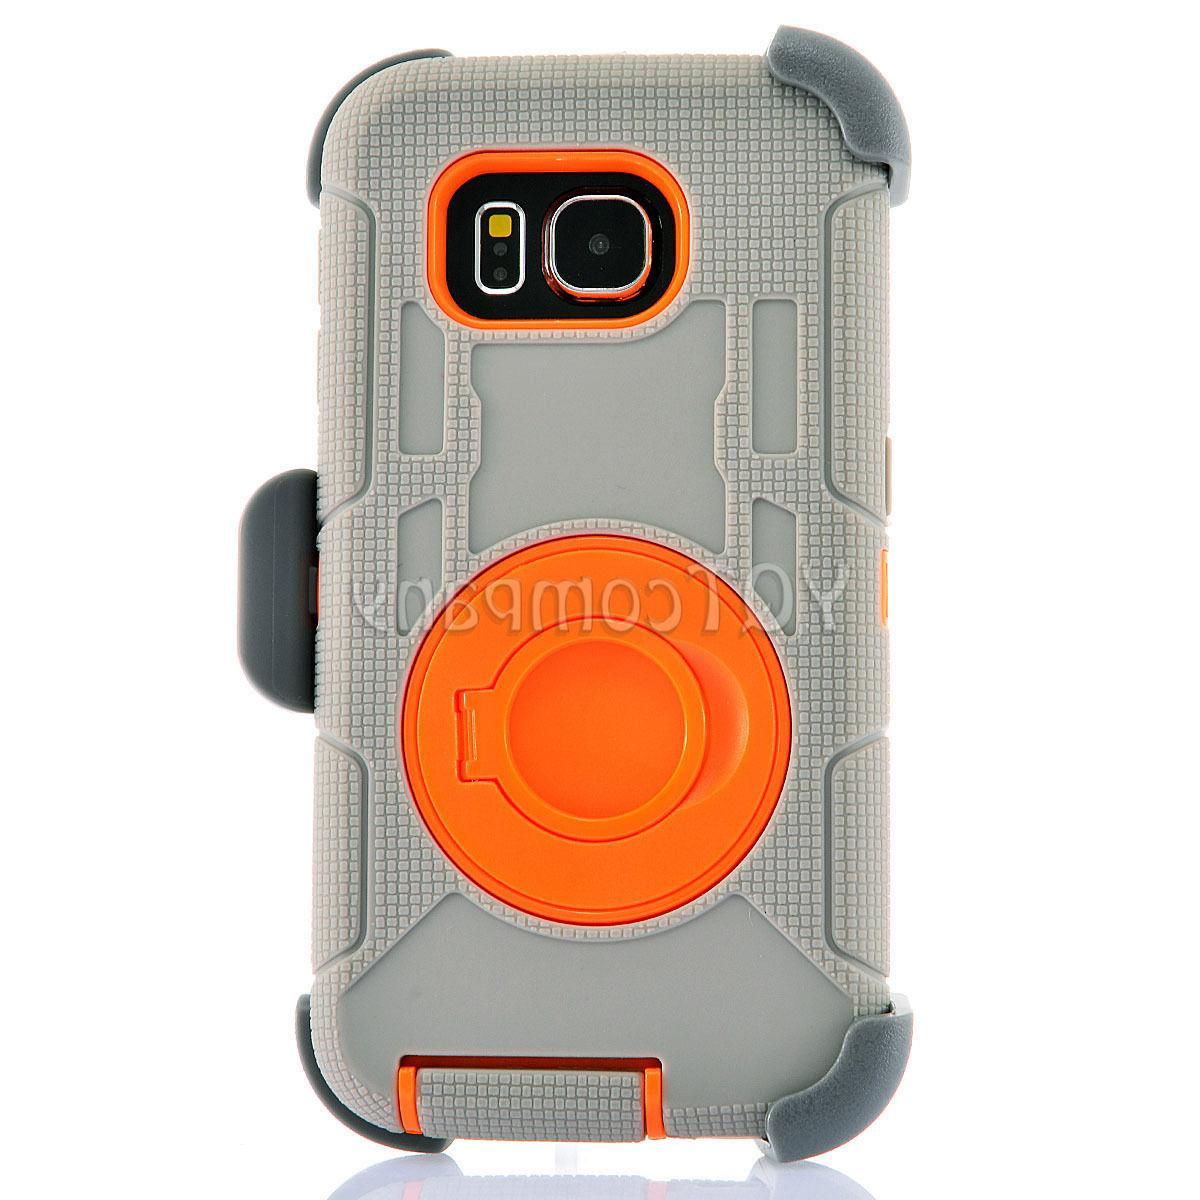 Samsung GALAXY Shockproof Hard Cover